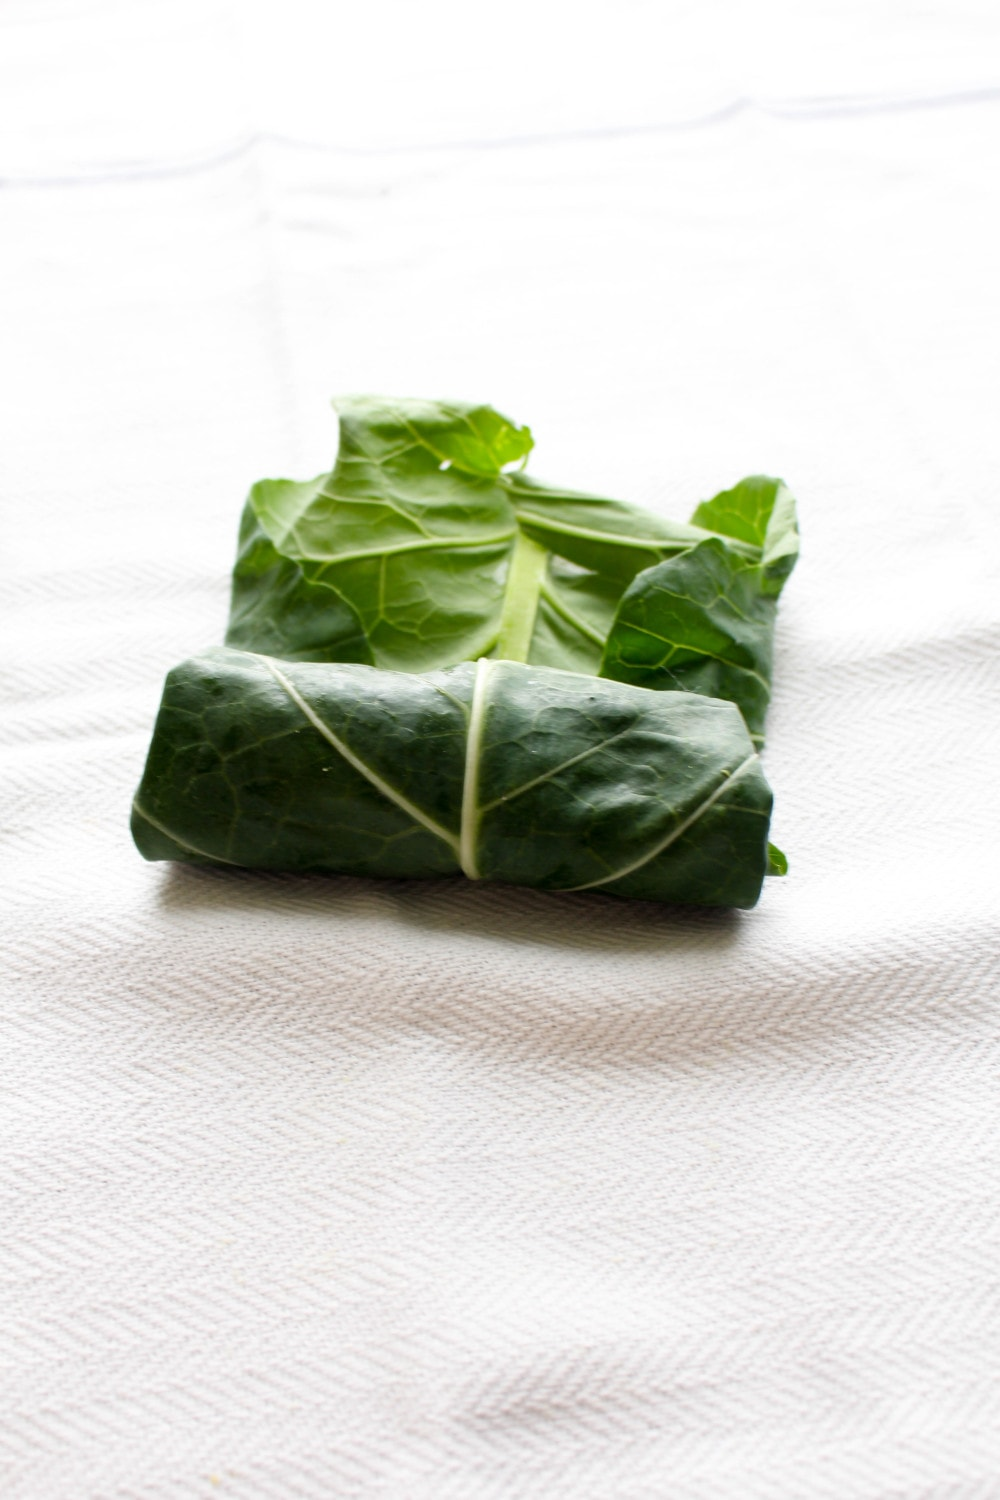 A simple secret makes these collards roll without cracking.